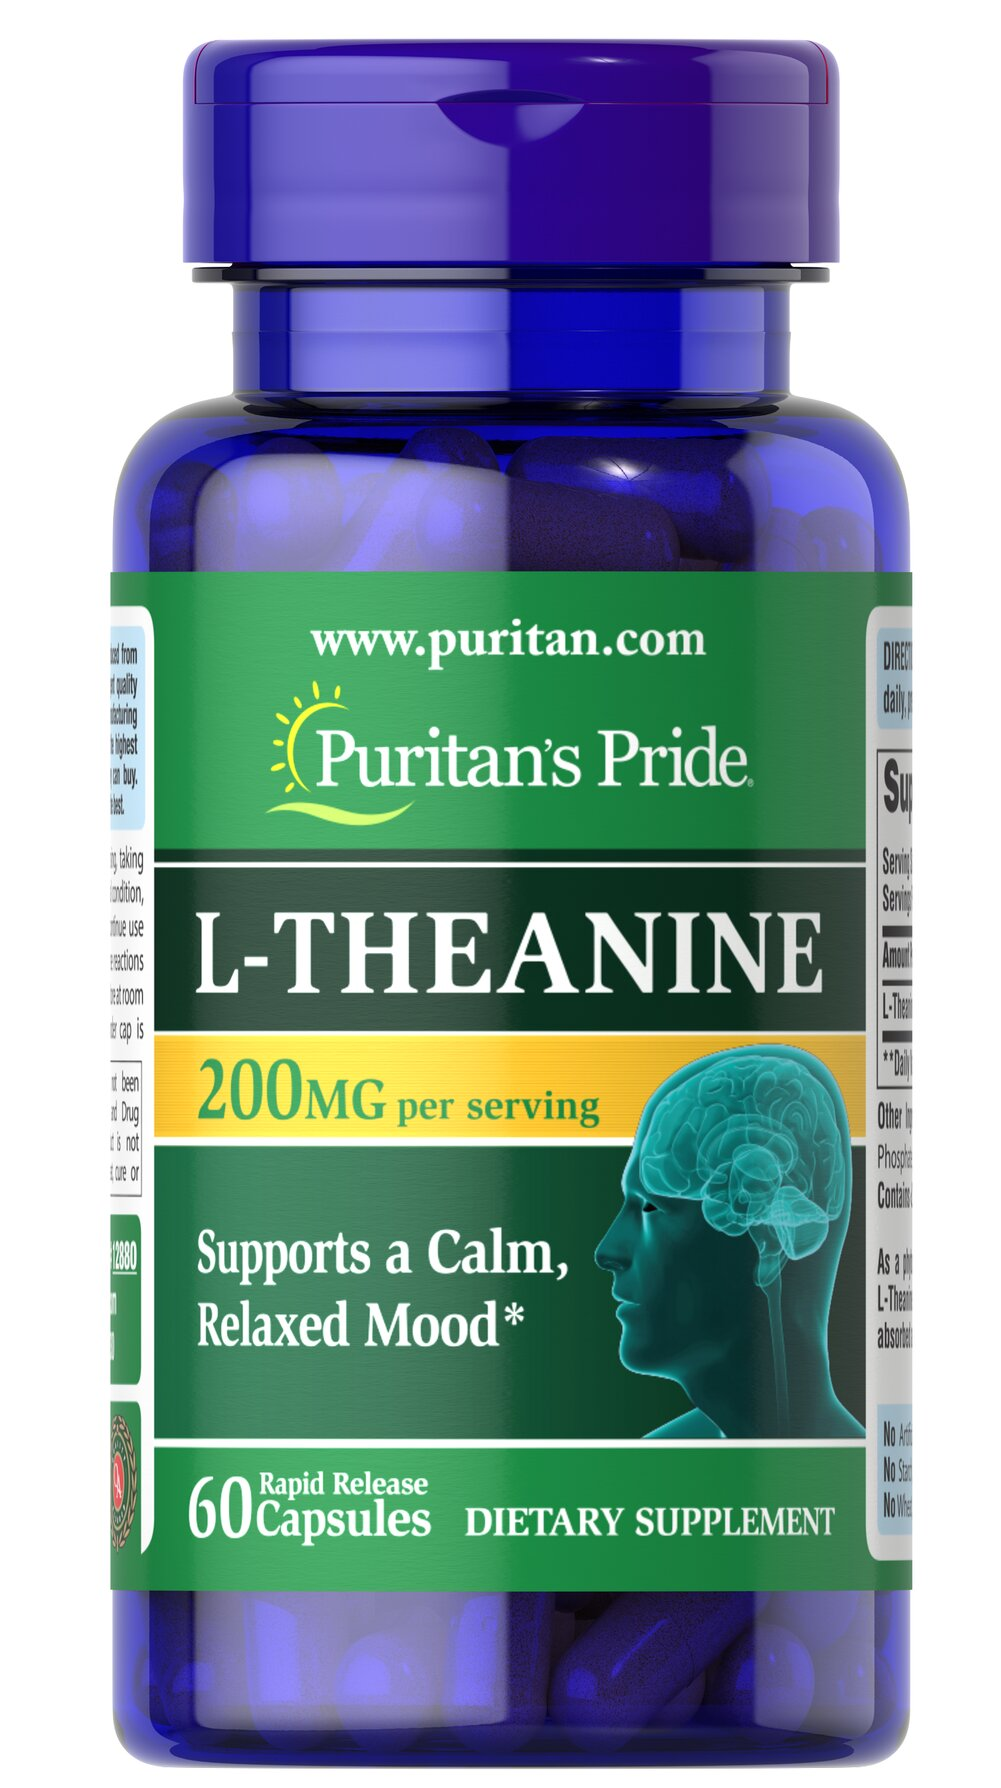 L-Theanine 200 mg <p>A close relative of Glutamate, studies indicate that L-Theanine interacts with the neurotransmitter, GABA (gammaminobutyrate).** GABA, known for its importance in nervous system functioning, works with the mood centers of the brain.** Studies in Japan show that L-Theanine helps support the body's ability to deal with PMS and occasional, everyday anxiety.**</p> 60 Capsules 200 mg $19.59